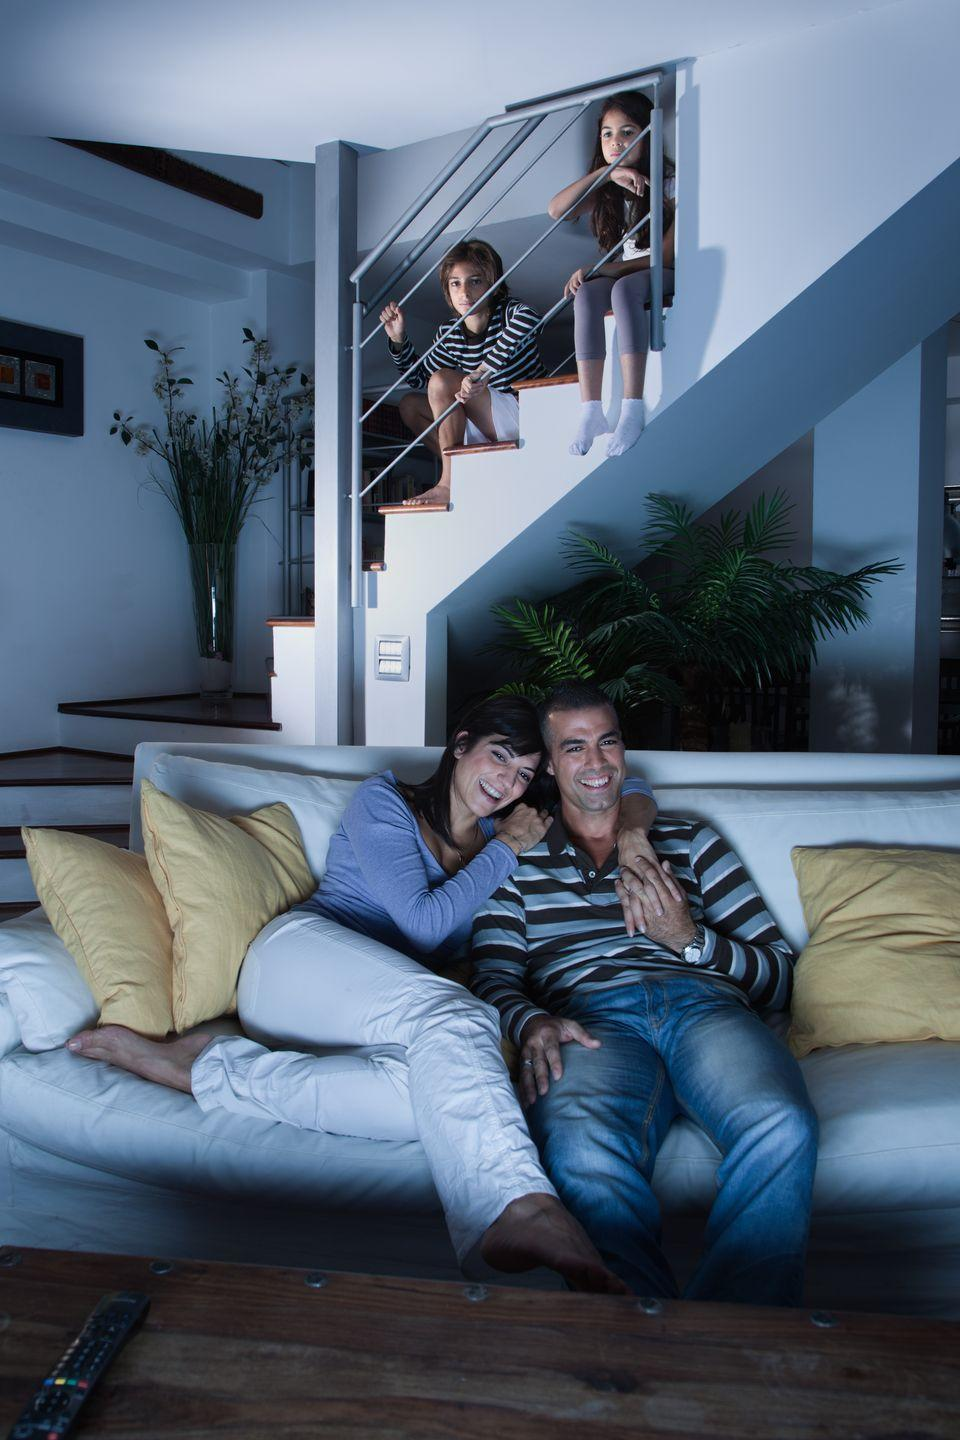 "<p>Take a chill approach to Valentine's Day this year. Instead of planning a ton of activities, plan an all-day movie marathon. The lineup can include the <a href=""https://www.goodhousekeeping.com/life/entertainment/g3243/best-romantic-comedy-movies/"" rel=""nofollow noopener"" target=""_blank"" data-ylk=""slk:best romantic comedies"" class=""link rapid-noclick-resp"">best romantic comedies</a> — and lots and lots of snacks. </p>"